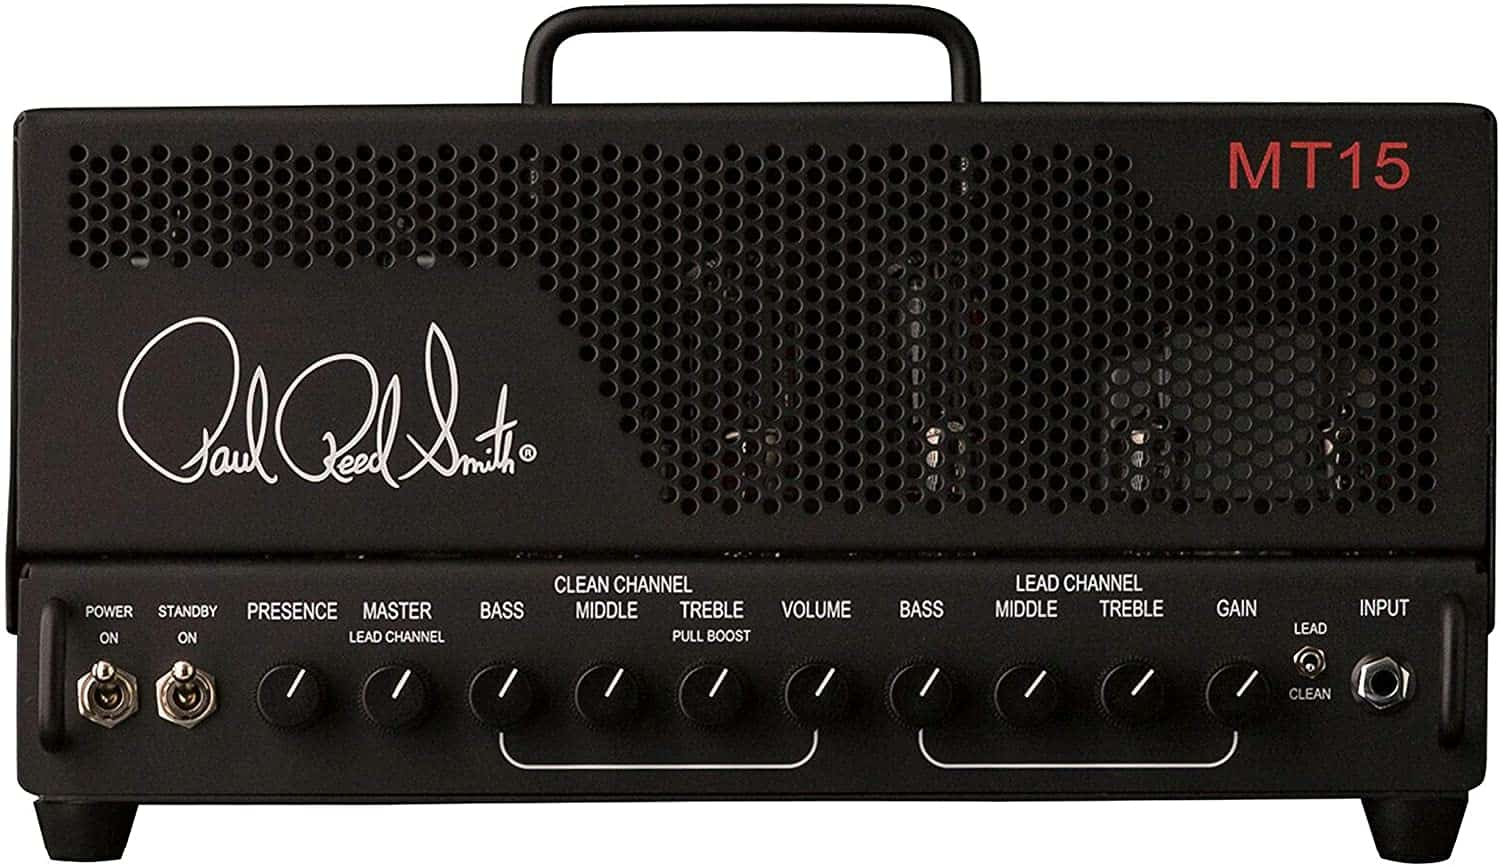 Best 15 watt tube head: PRS MT 15 Mark Tremonti